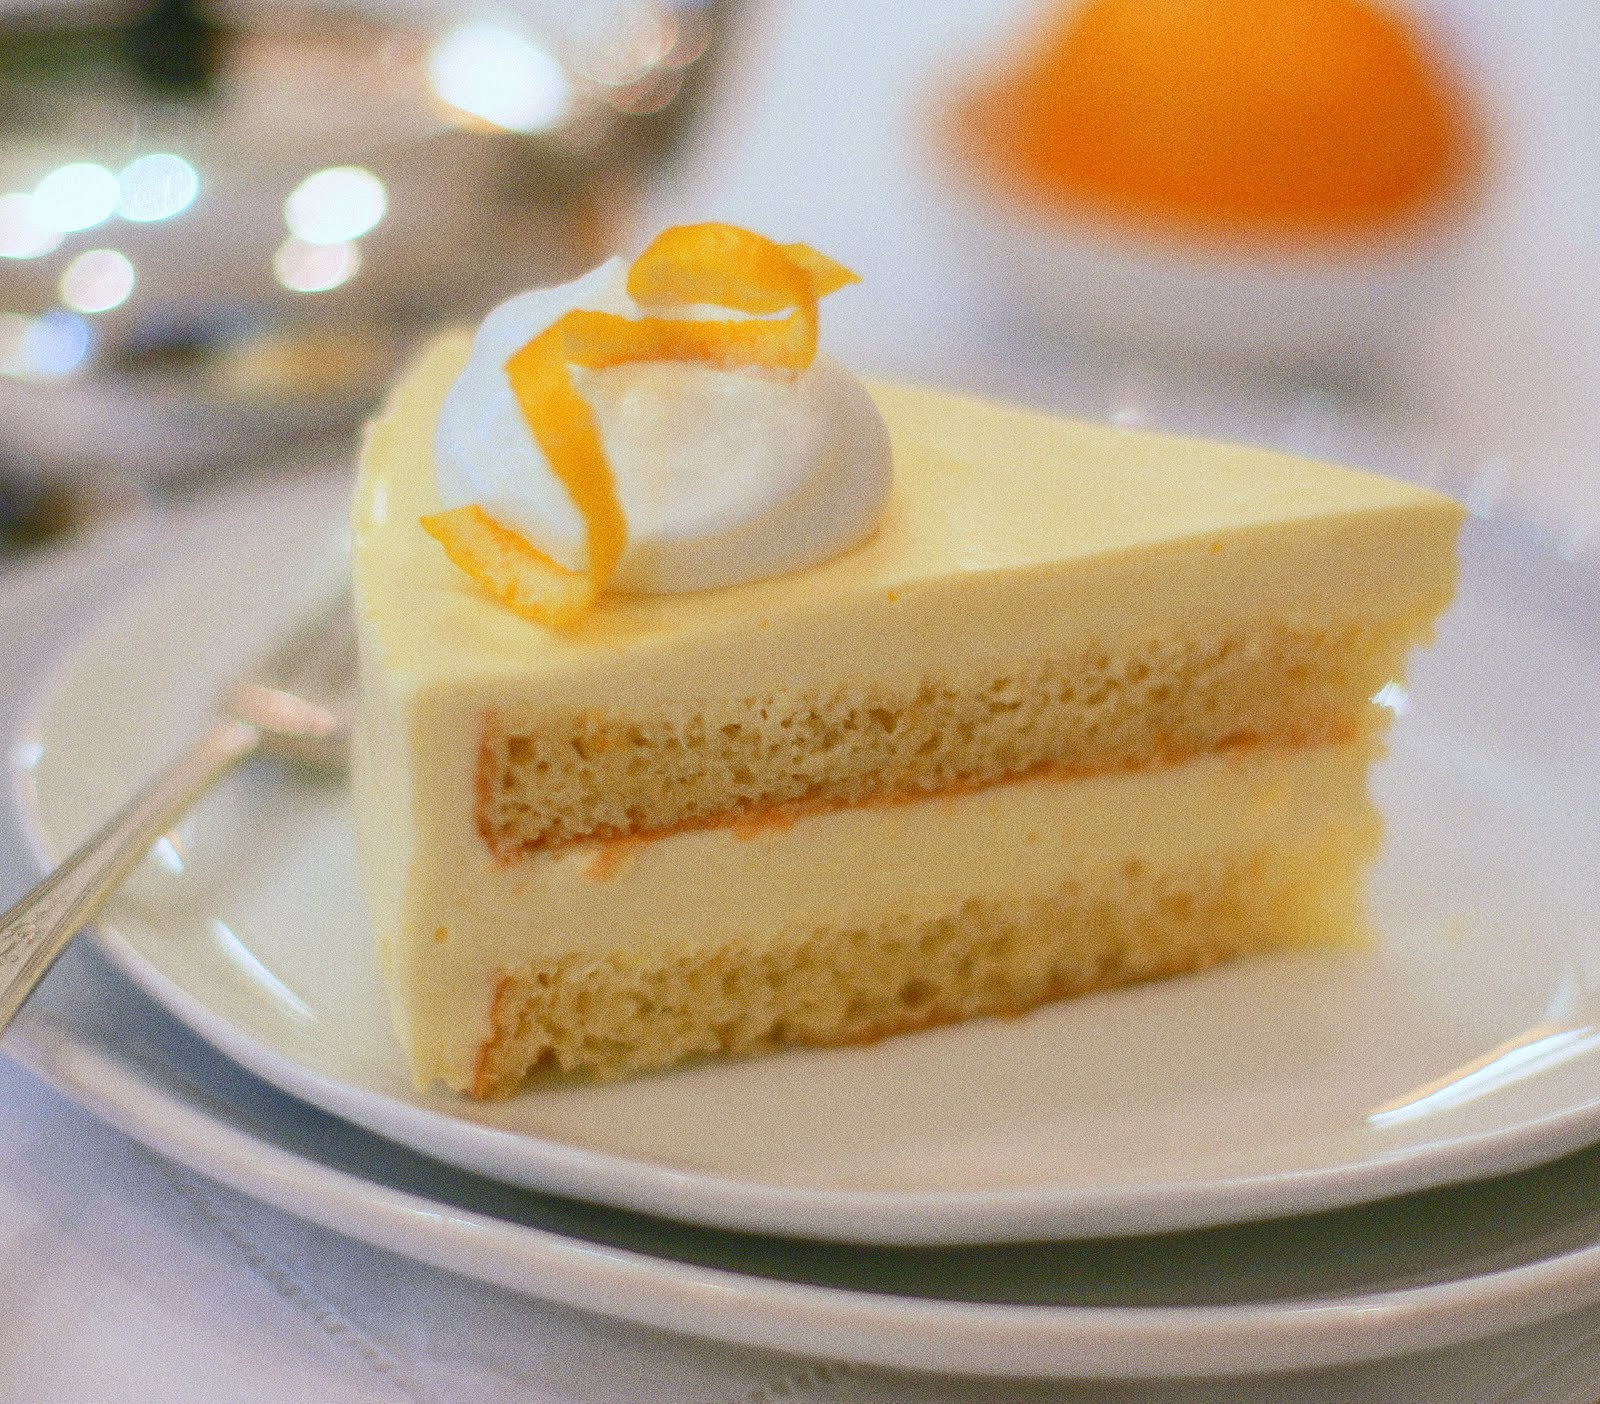 How To Make Orange Juice Cake